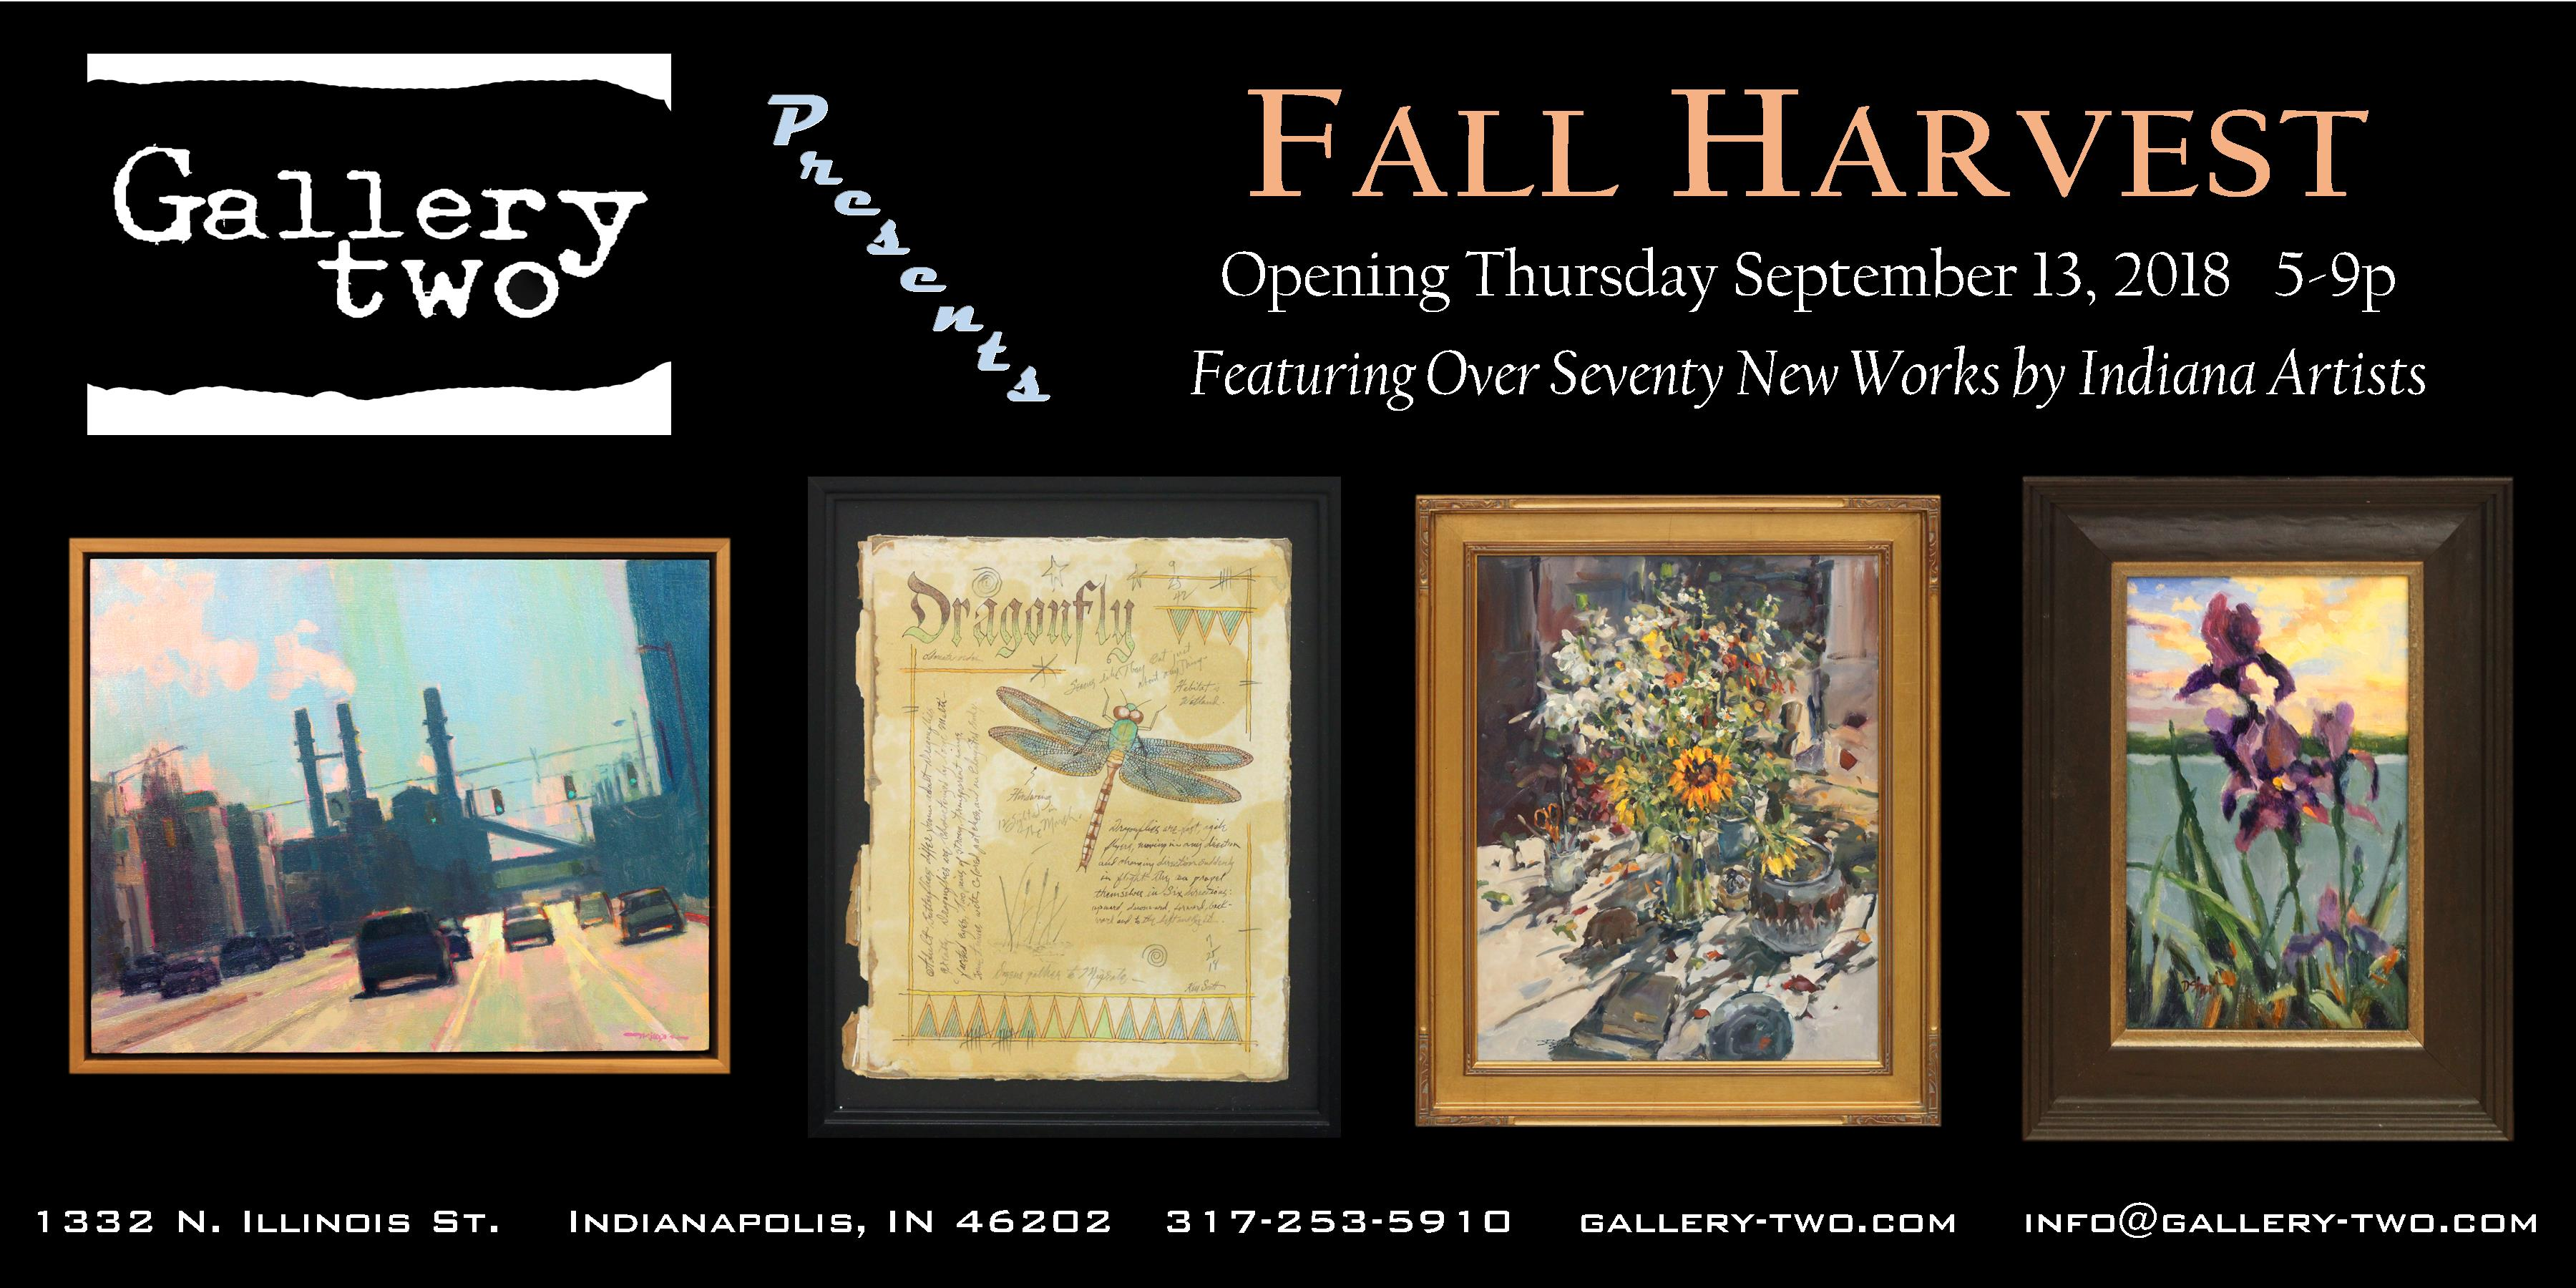 fall harvest opening reception at gallery two featuring 70 recent works by indiana artists